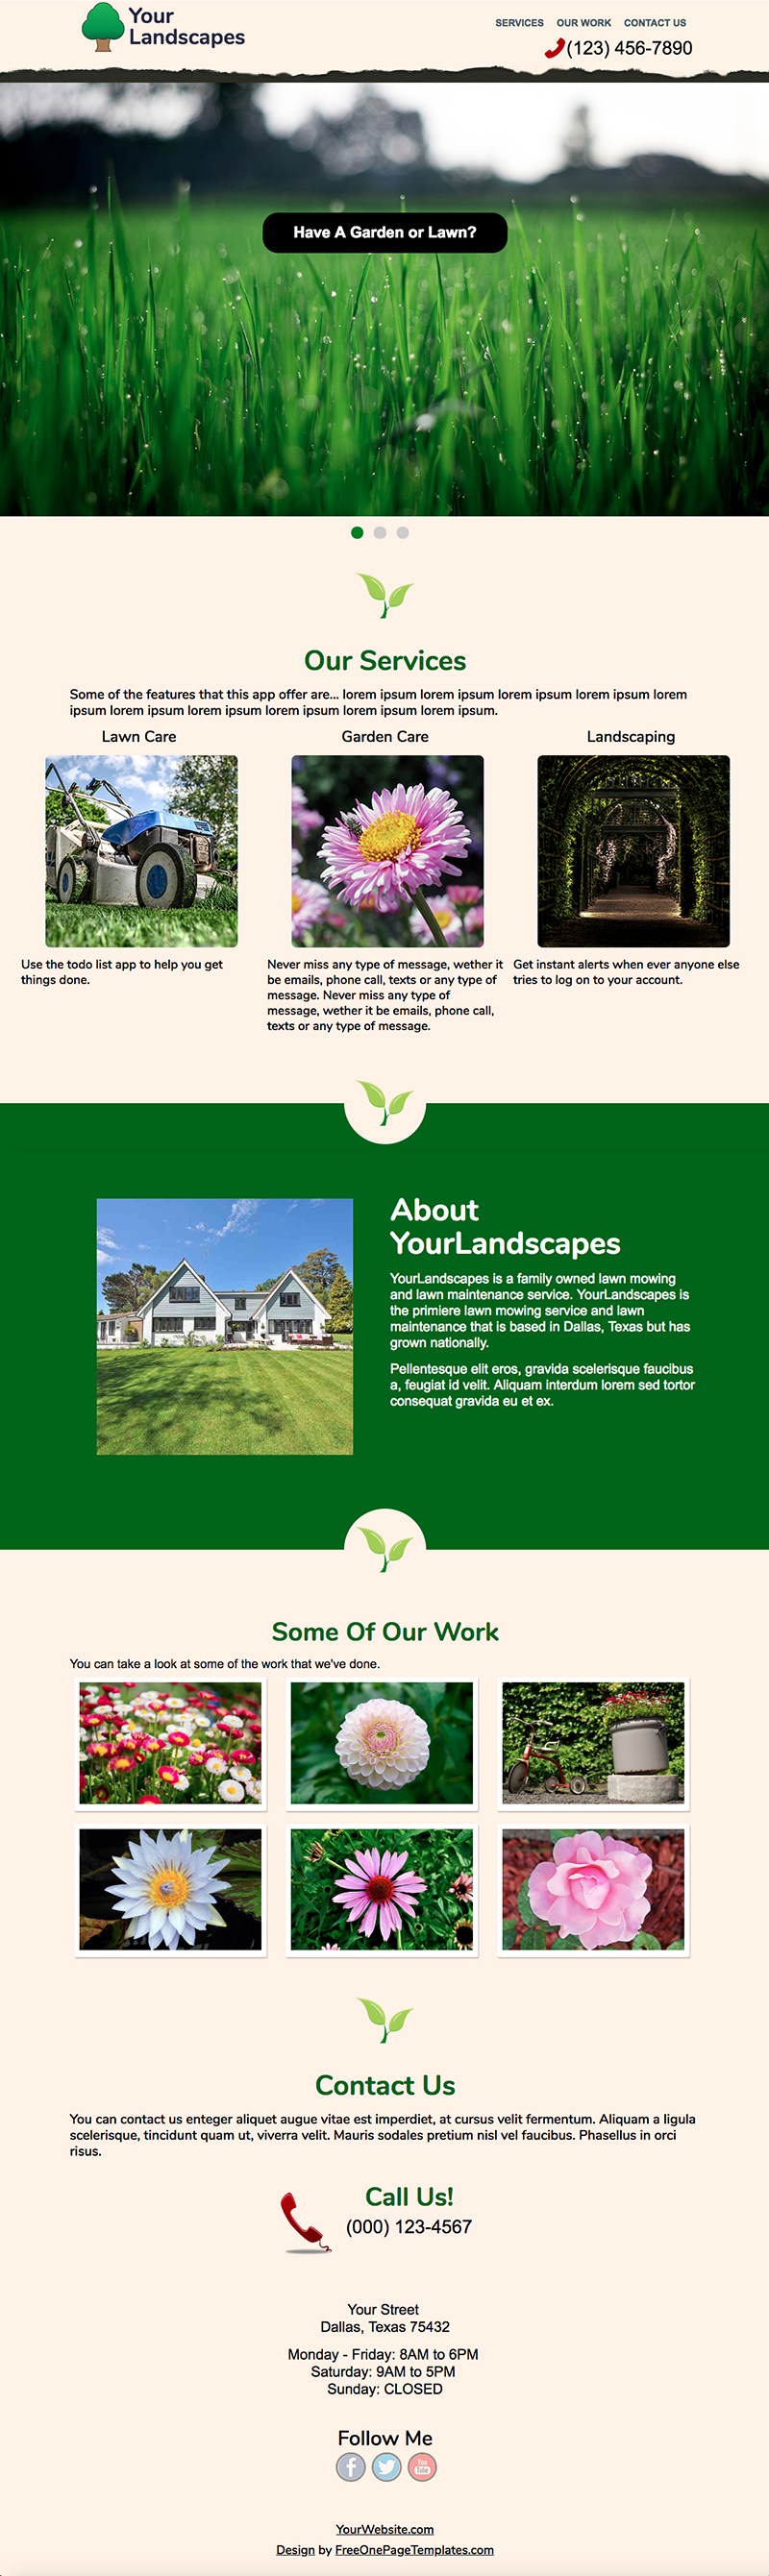 Free One Page Landscaping Website Template - Your Landscapes Template Preview